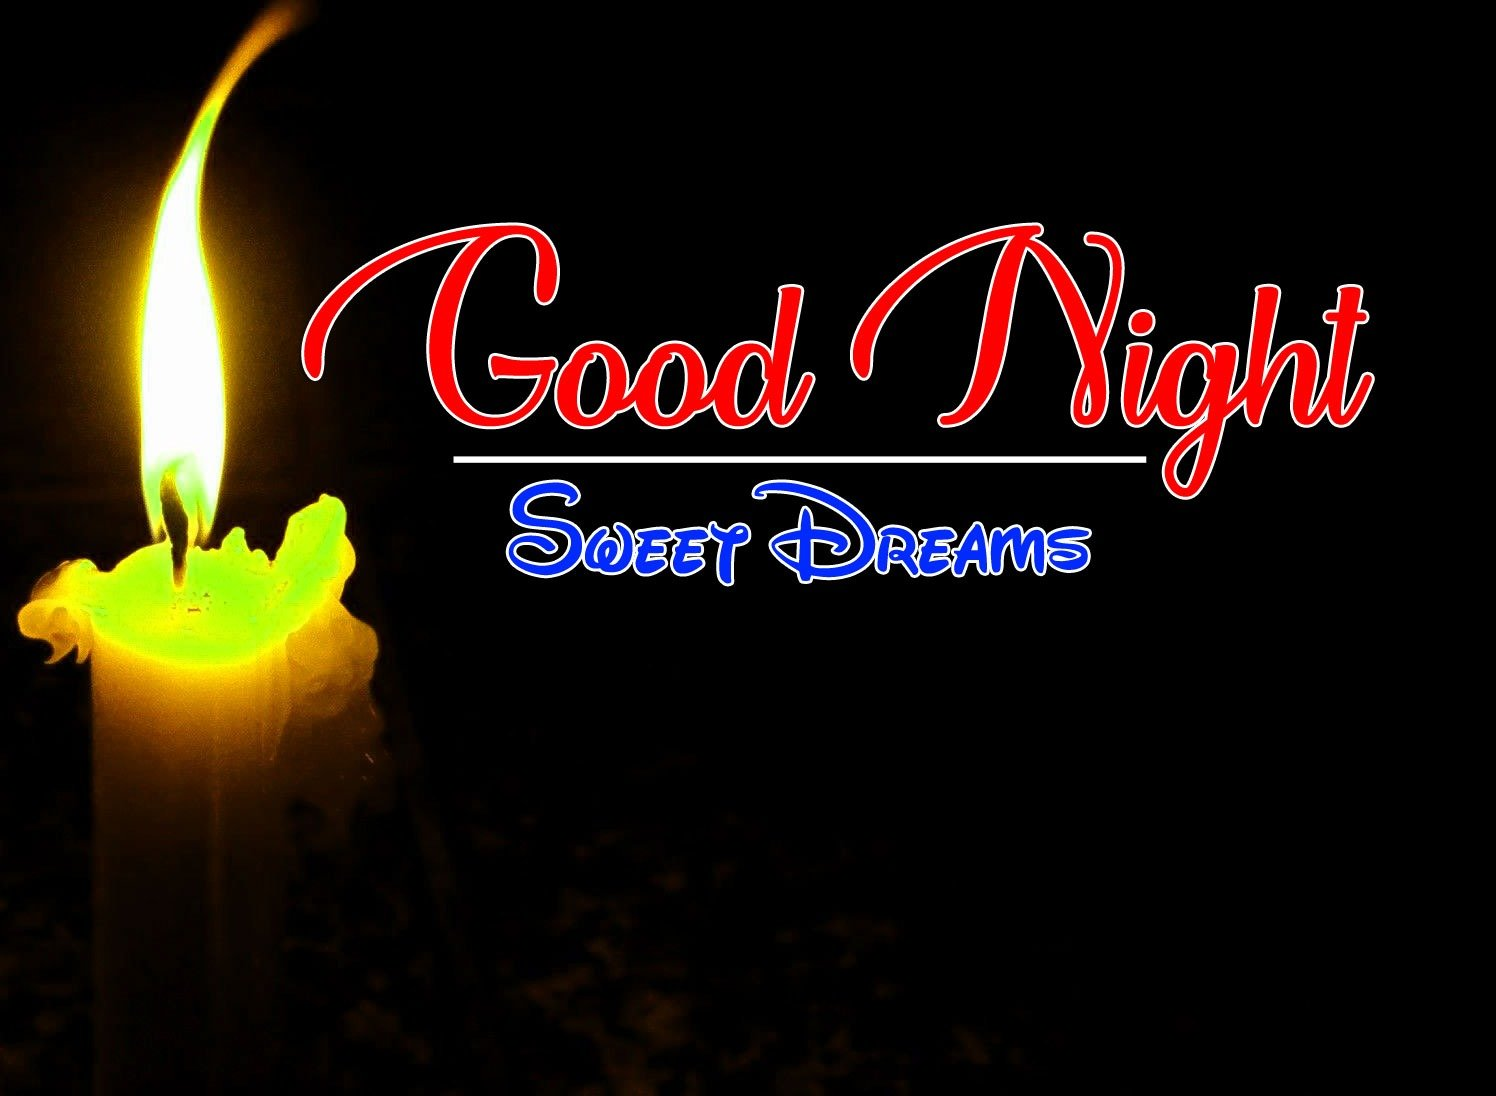 Free Beautiful Good Night Images For Facebook